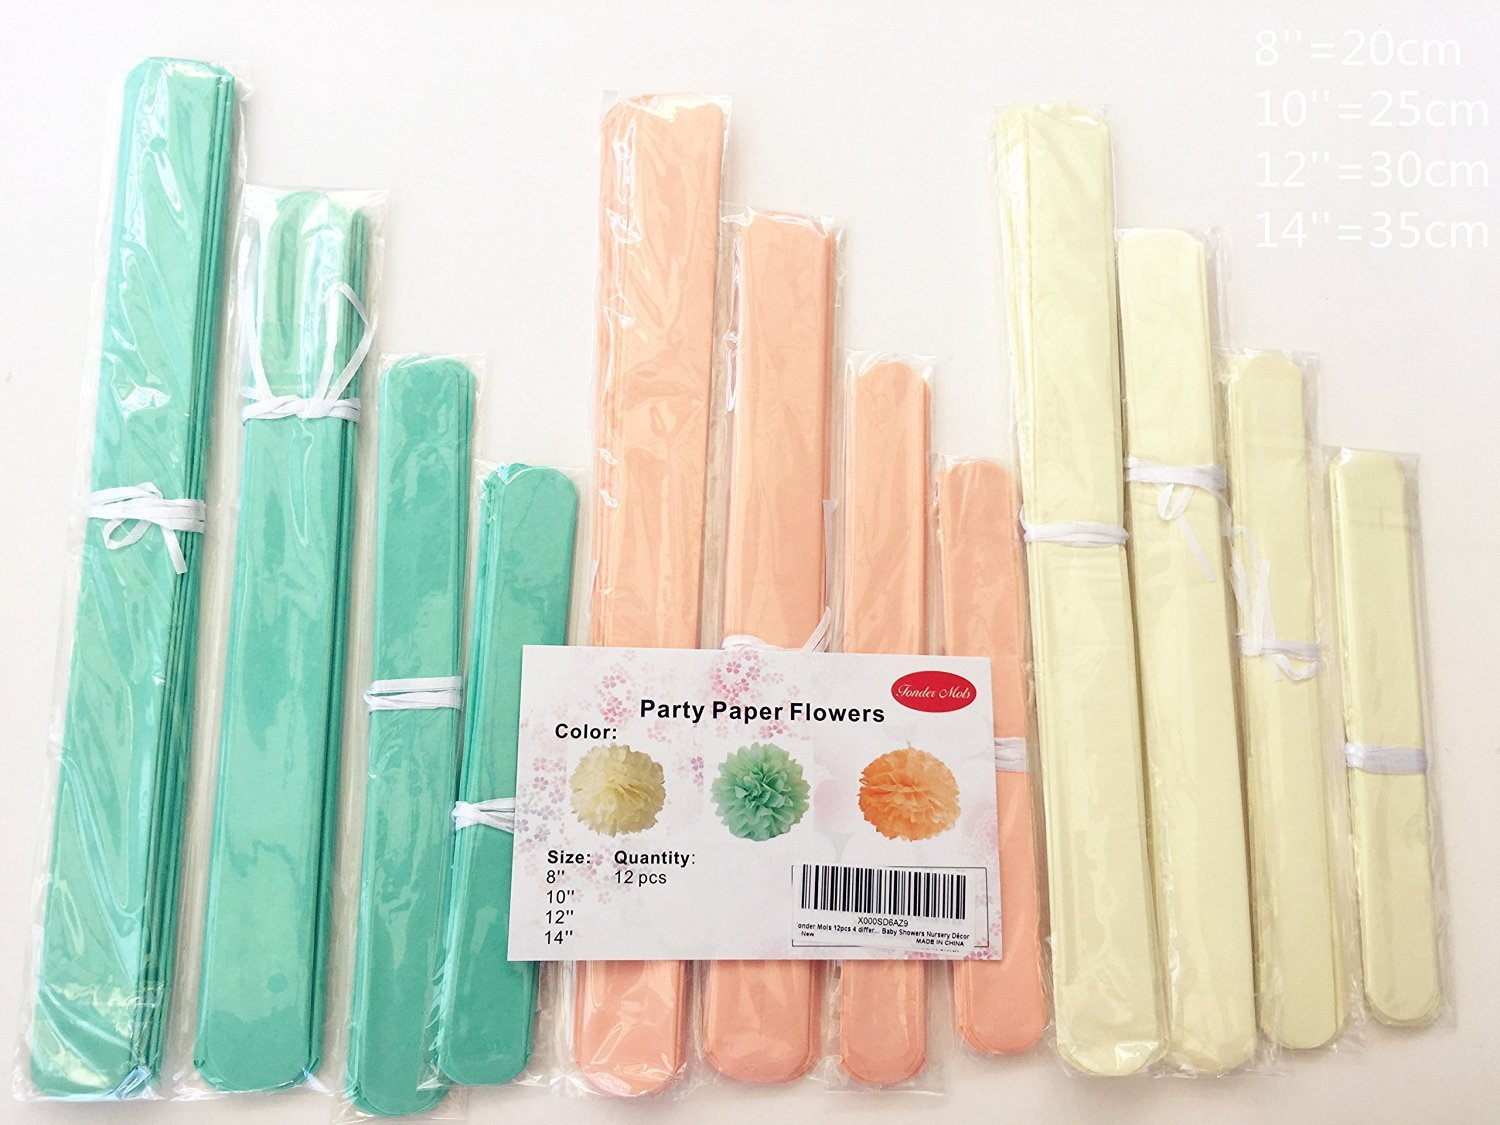 Fonder Mols 12pcs Large Sizes 8'' 10'' 12'' 14'' Ivory Peach Mint Party Tissue Pom Poms Flowers Decorations for Weddings, Birthday, Bridal, Baby Showers Nursery Wall Decor